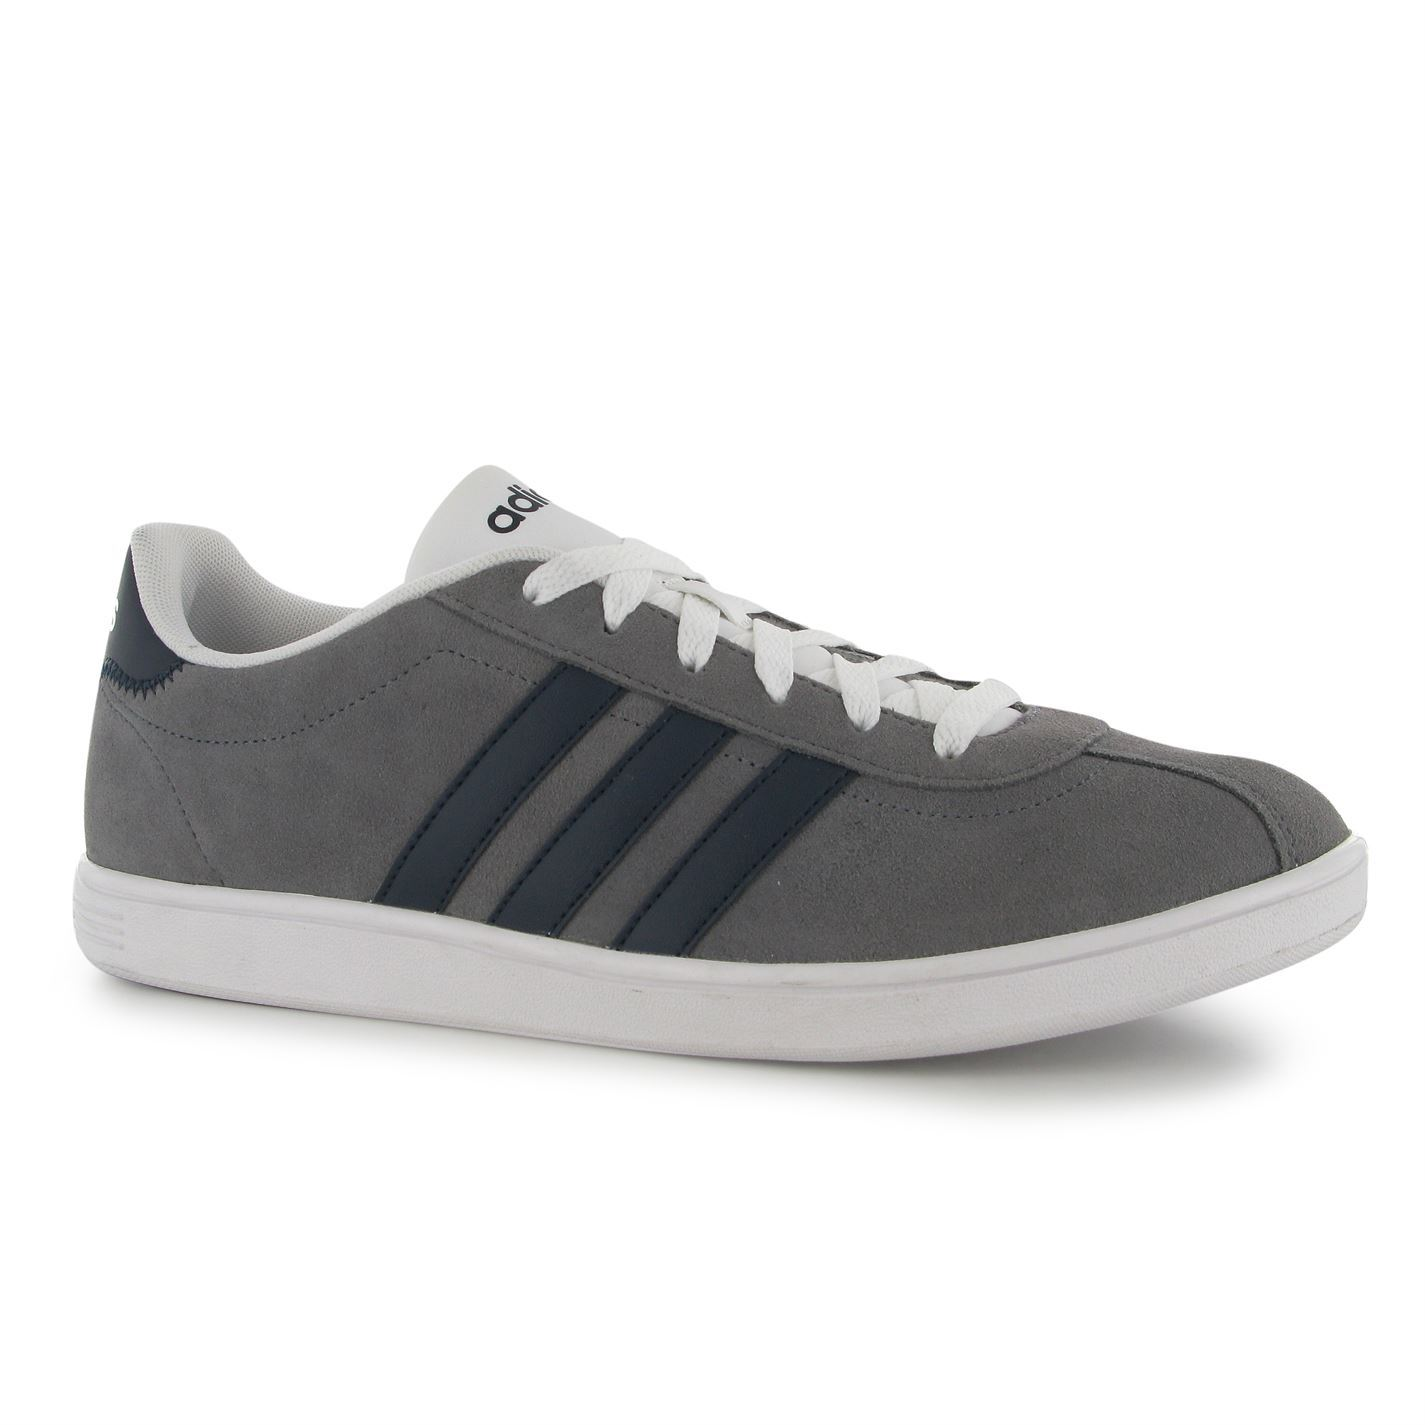 adidas Gents Mens VL Court Suede Sports Shoes Sneakers Trainers